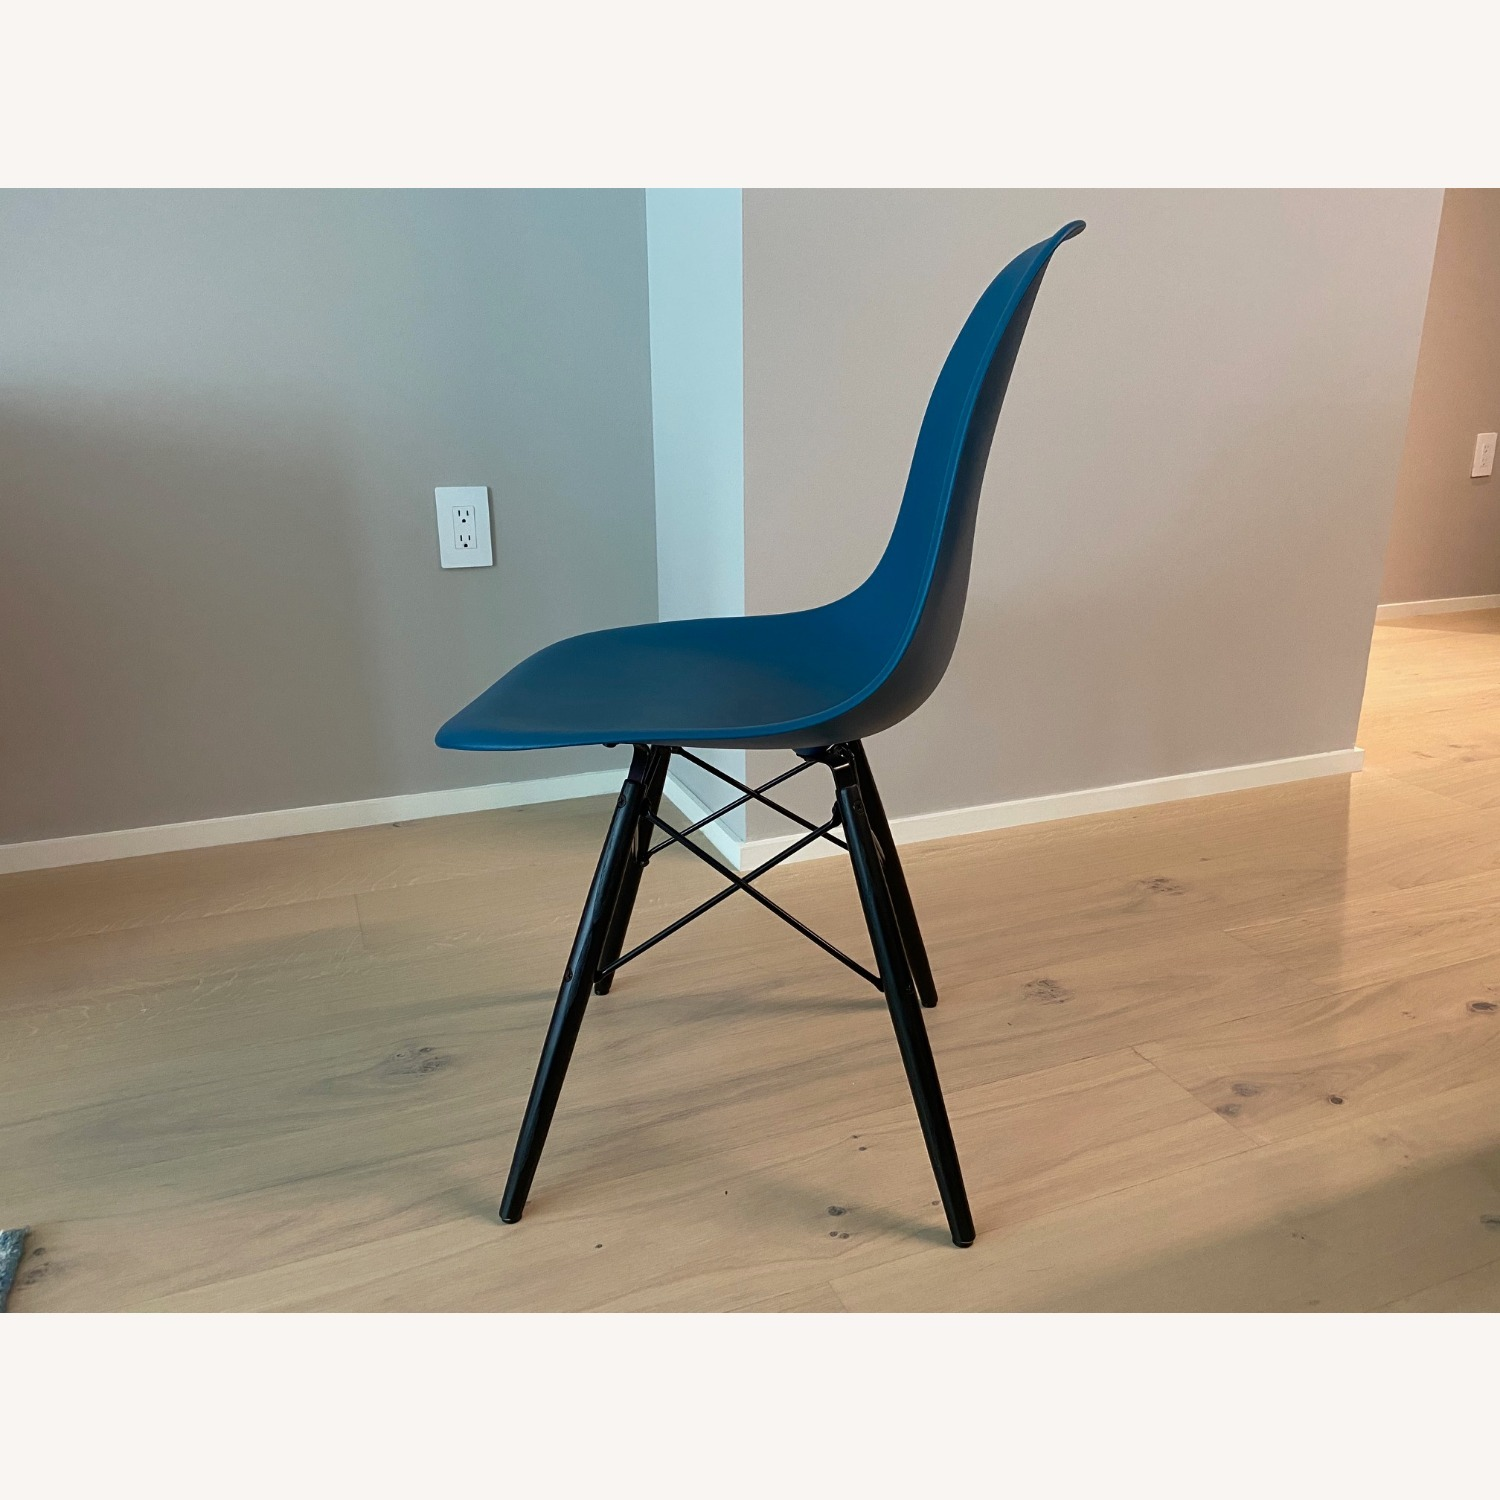 4 x Herman Miller Eames Molded Plastic Side Chair - image-1